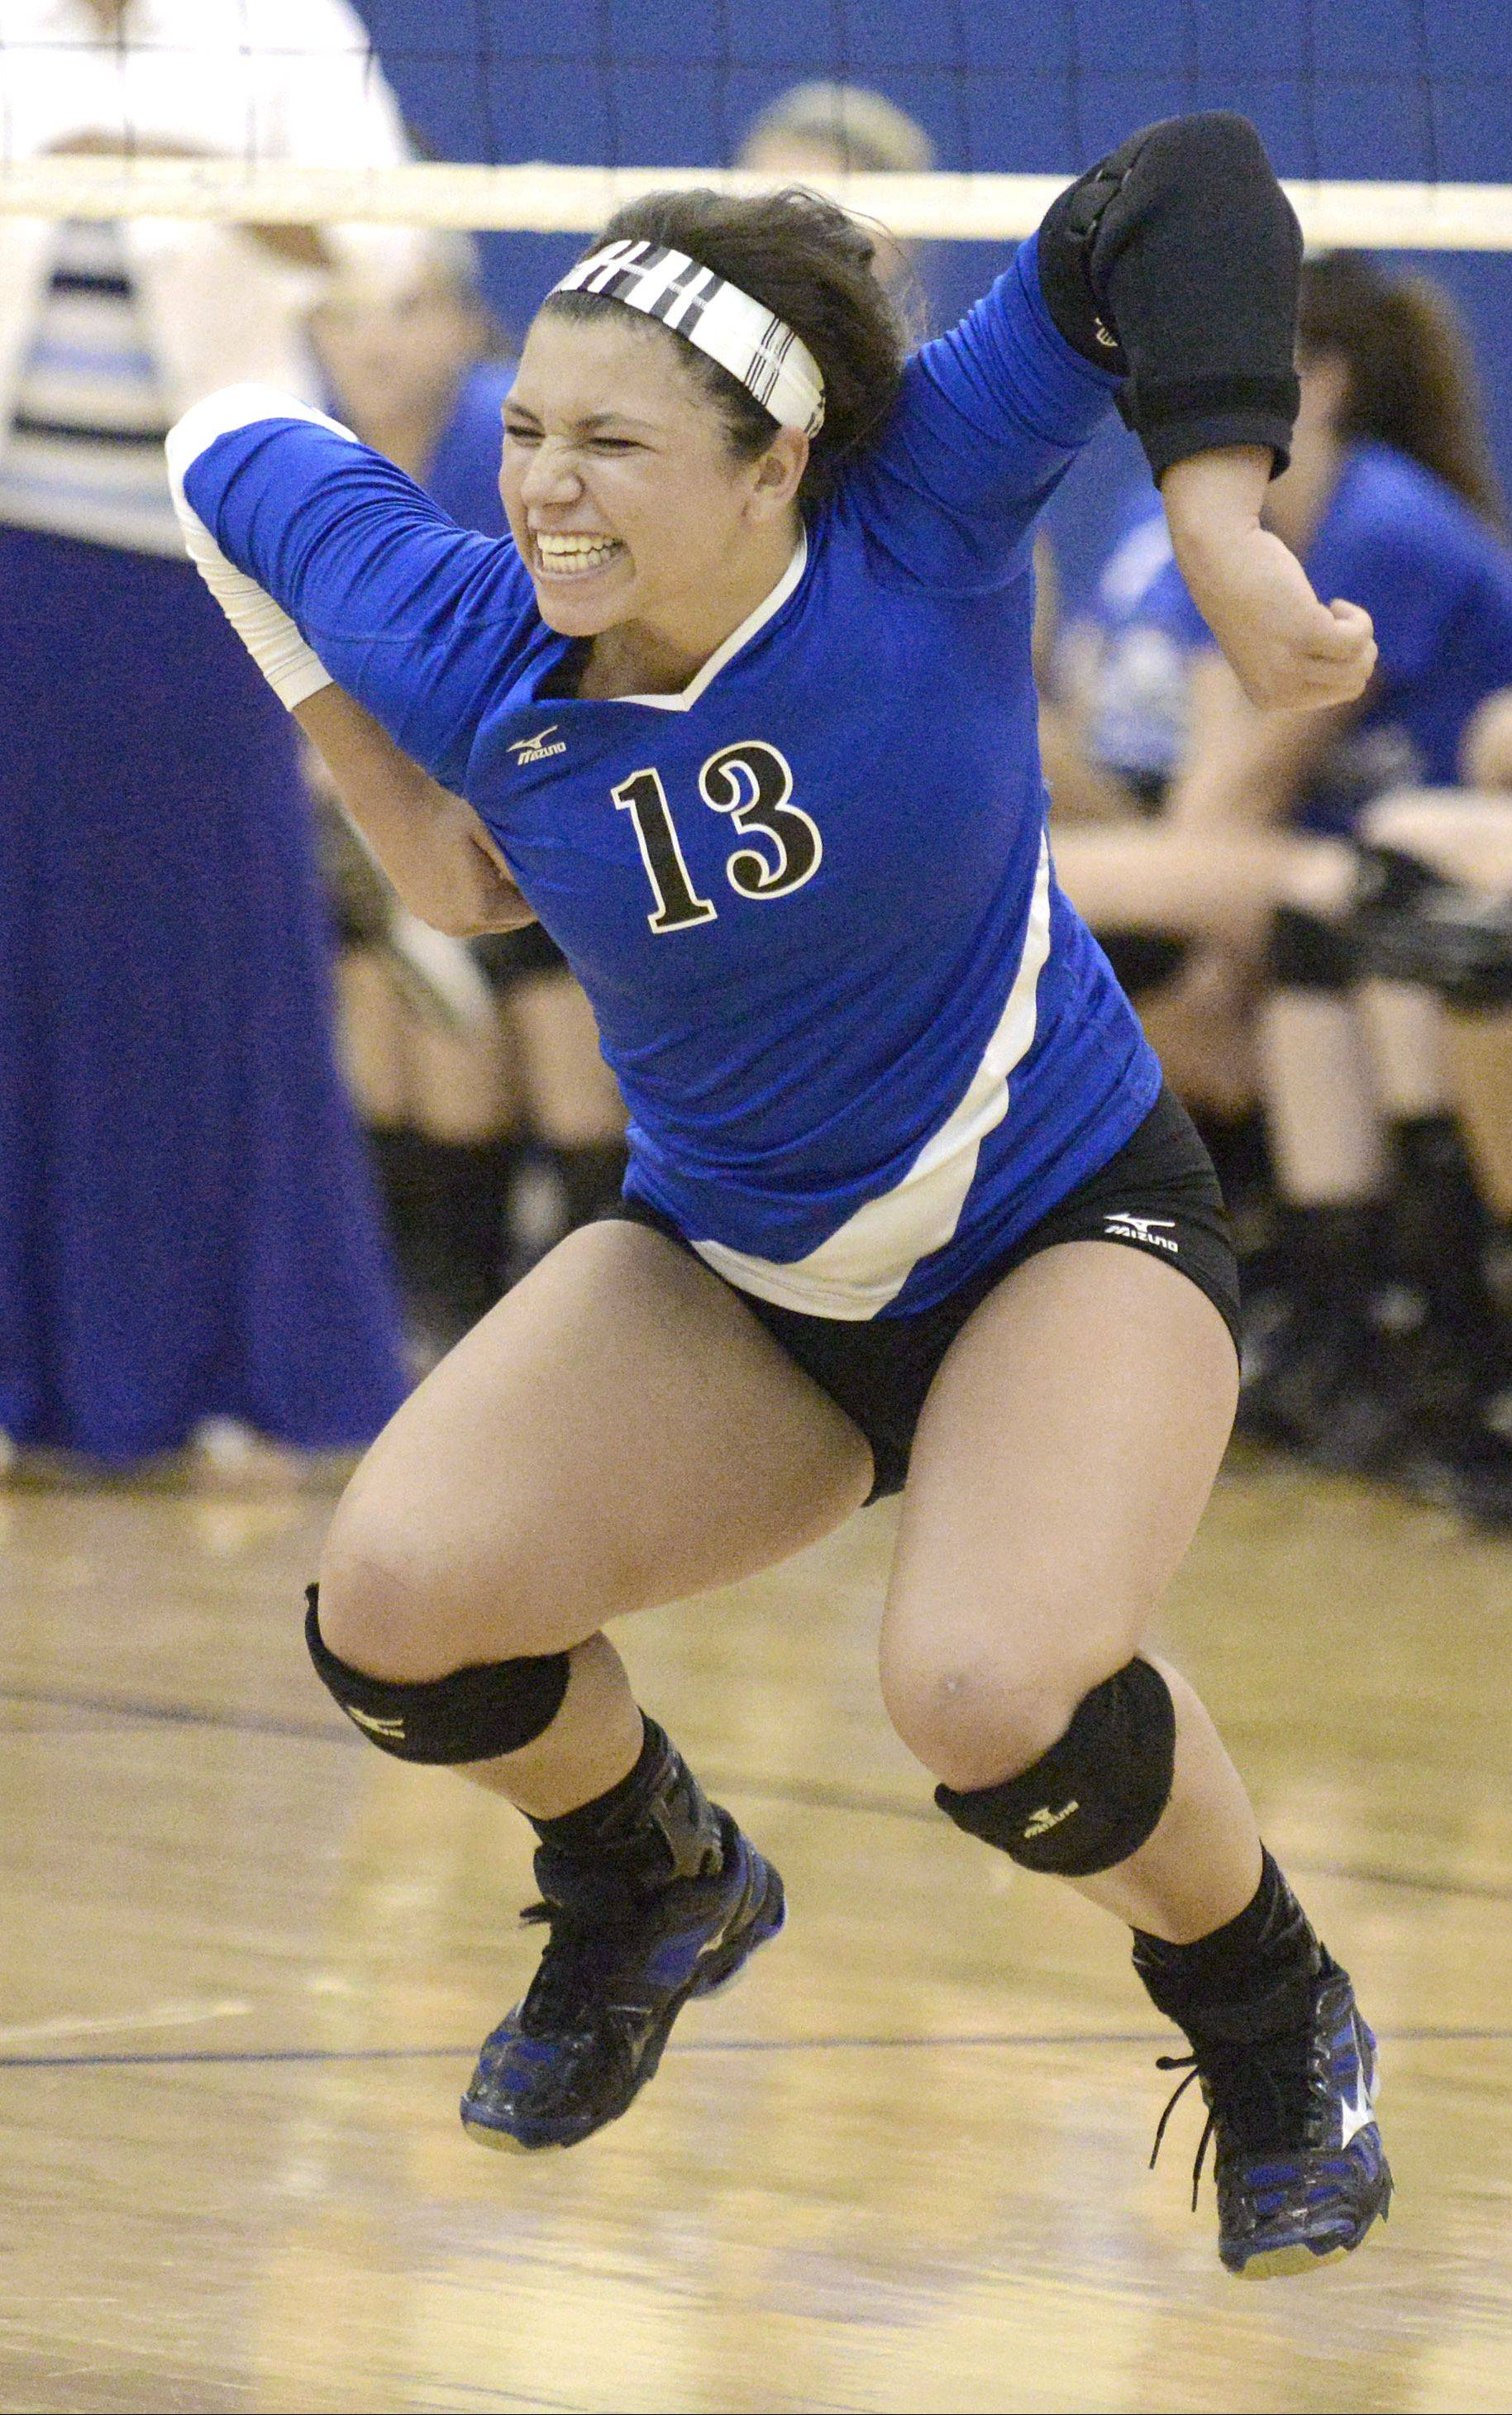 Geneva's Courtney Caruso celebrates a point as the Vikings close in on the win.